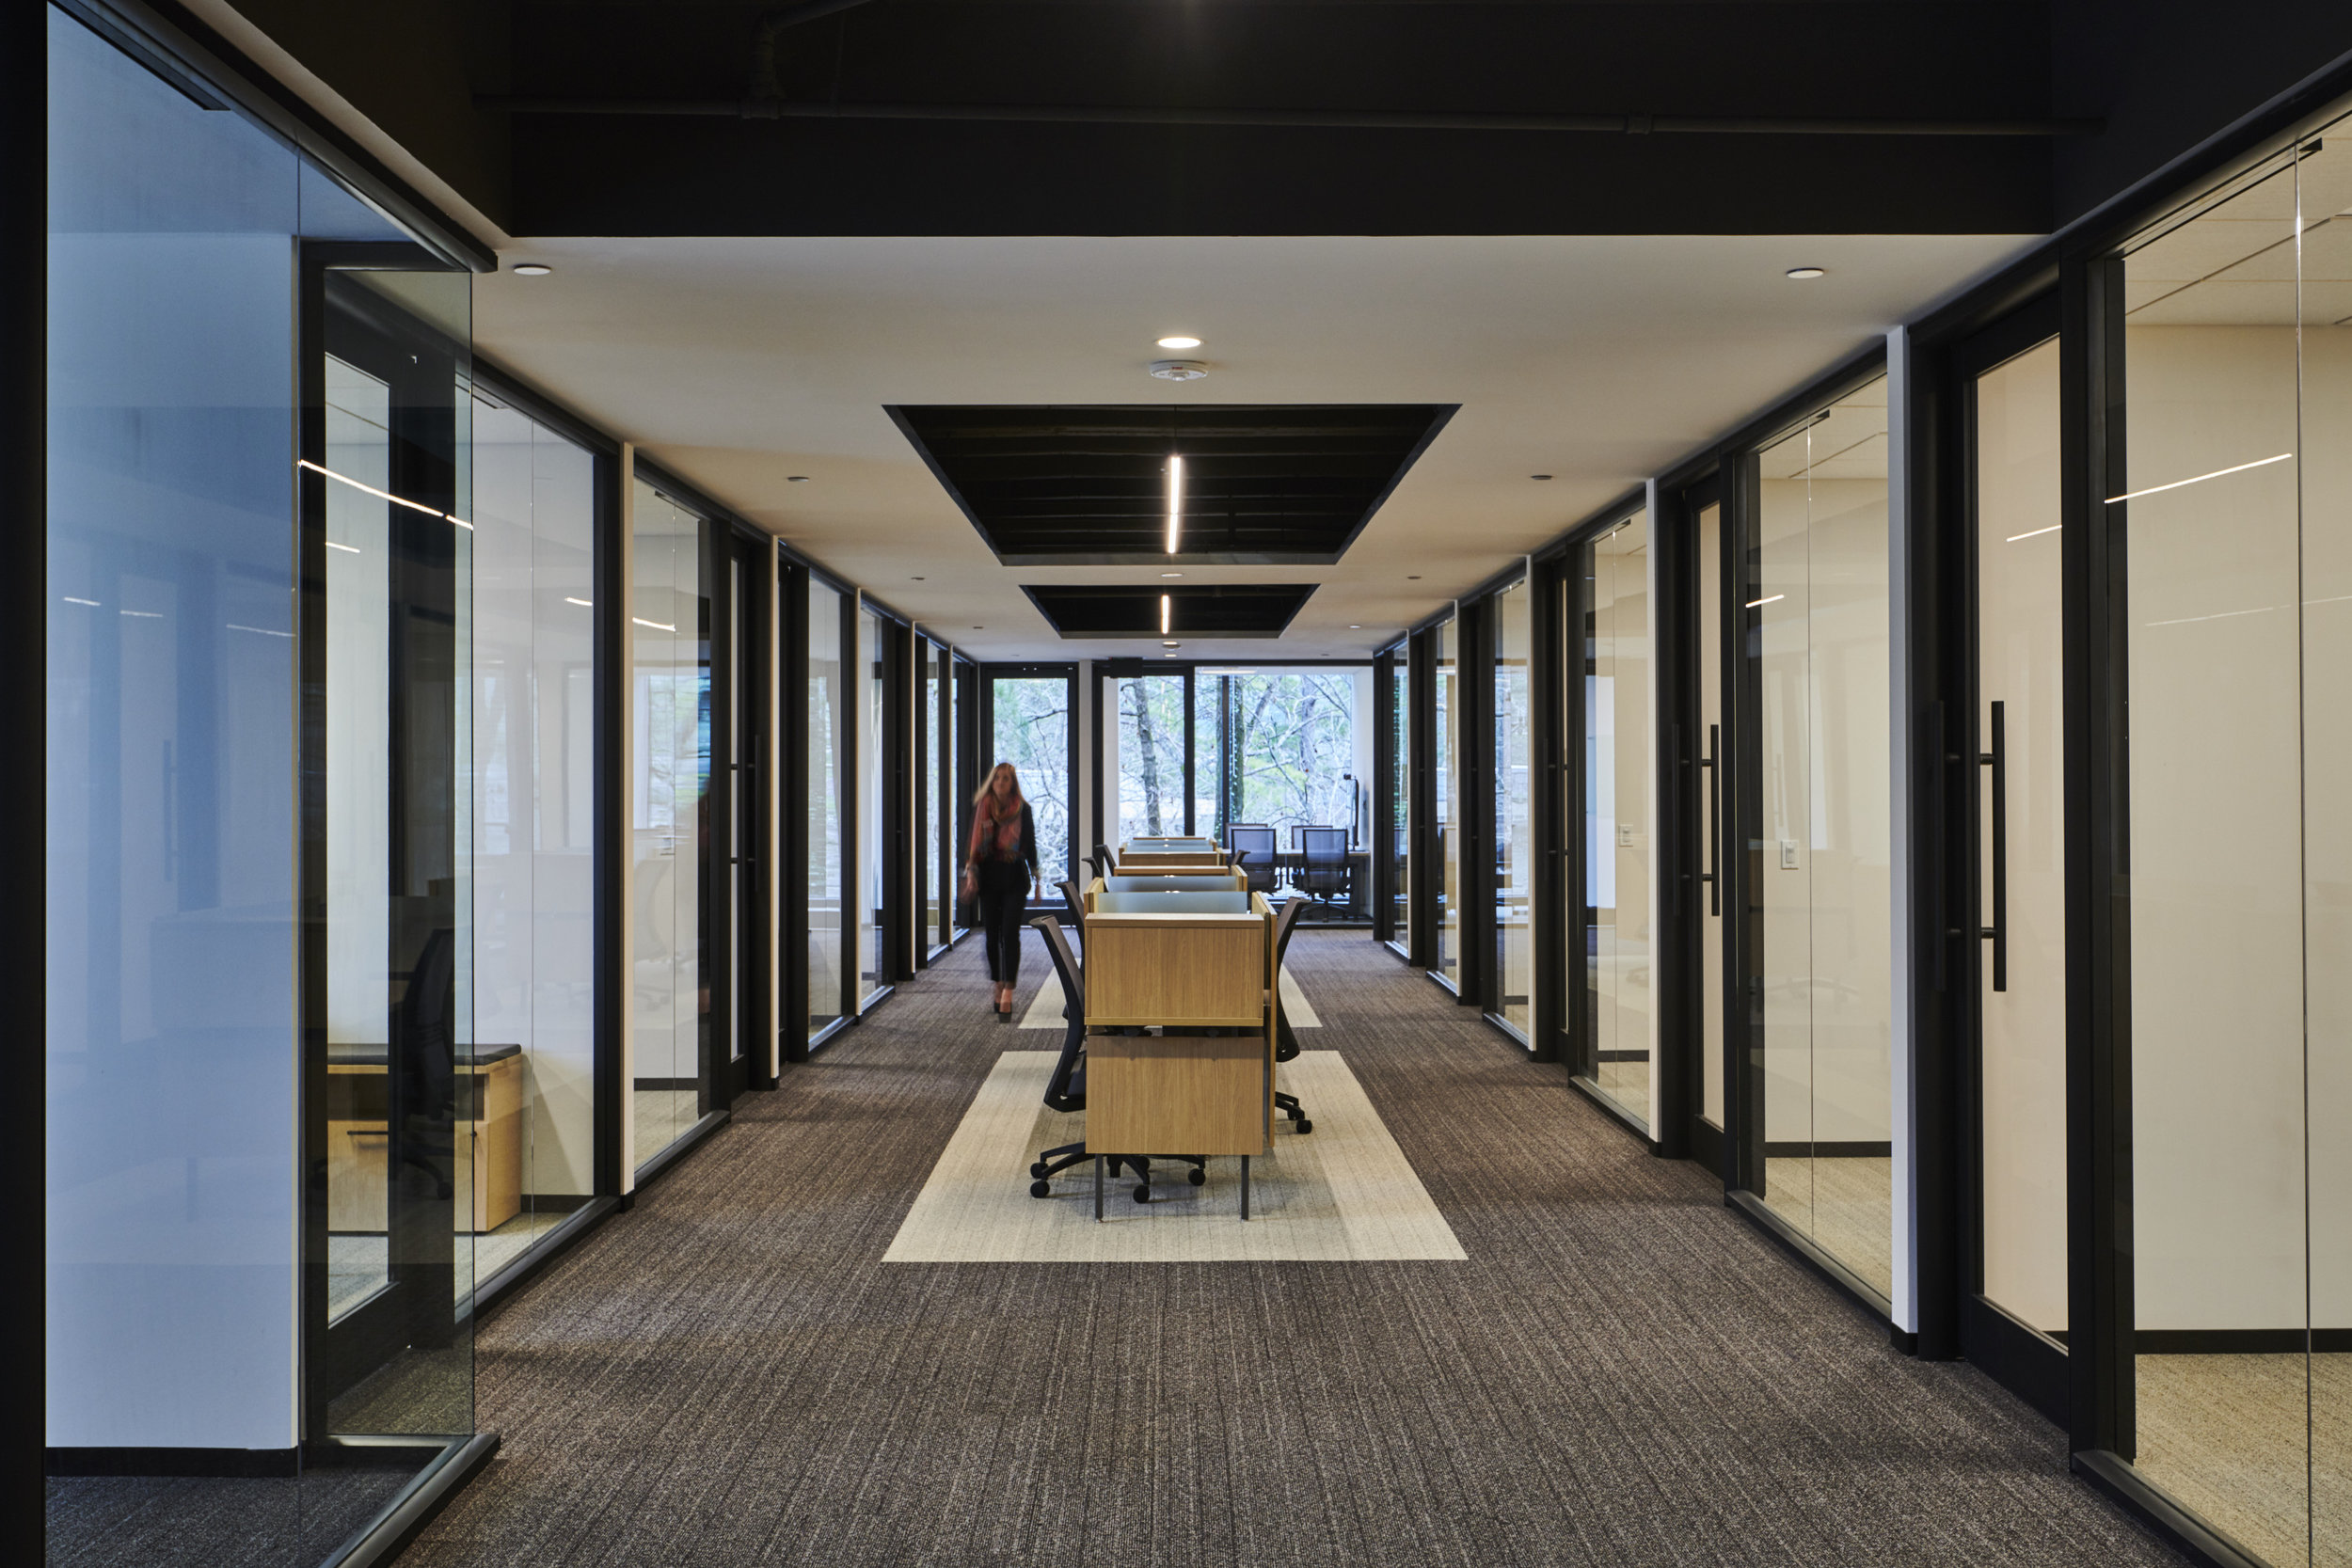 Private offices with glass along the interior corridors allow natural light and views for everyone.